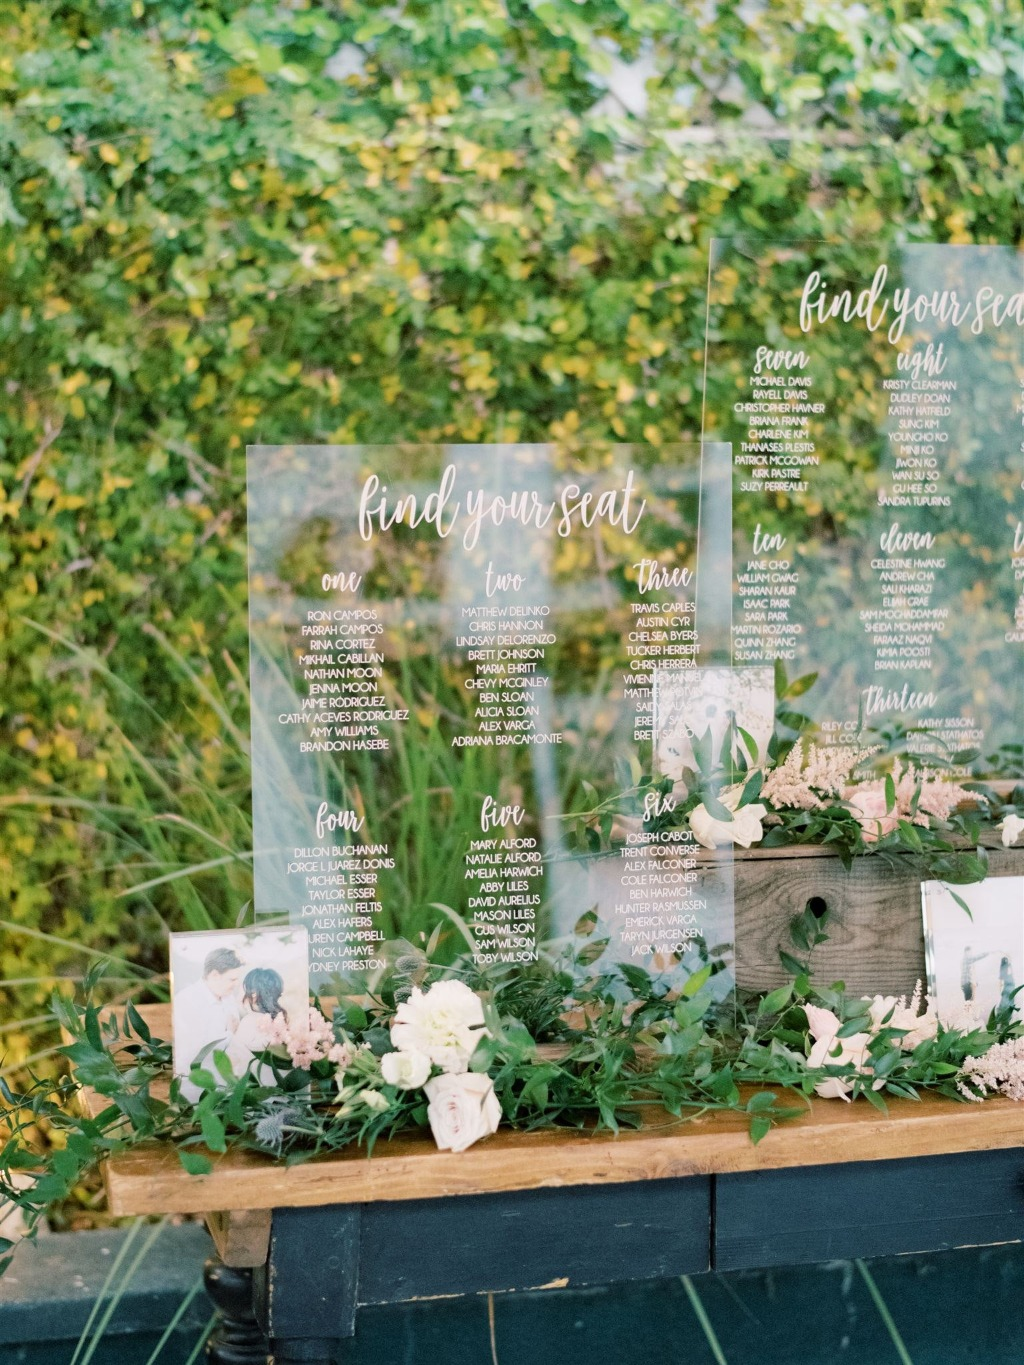 This seating chart set up is gorgeous! Love the clear acrylic against the greenery backdrop.